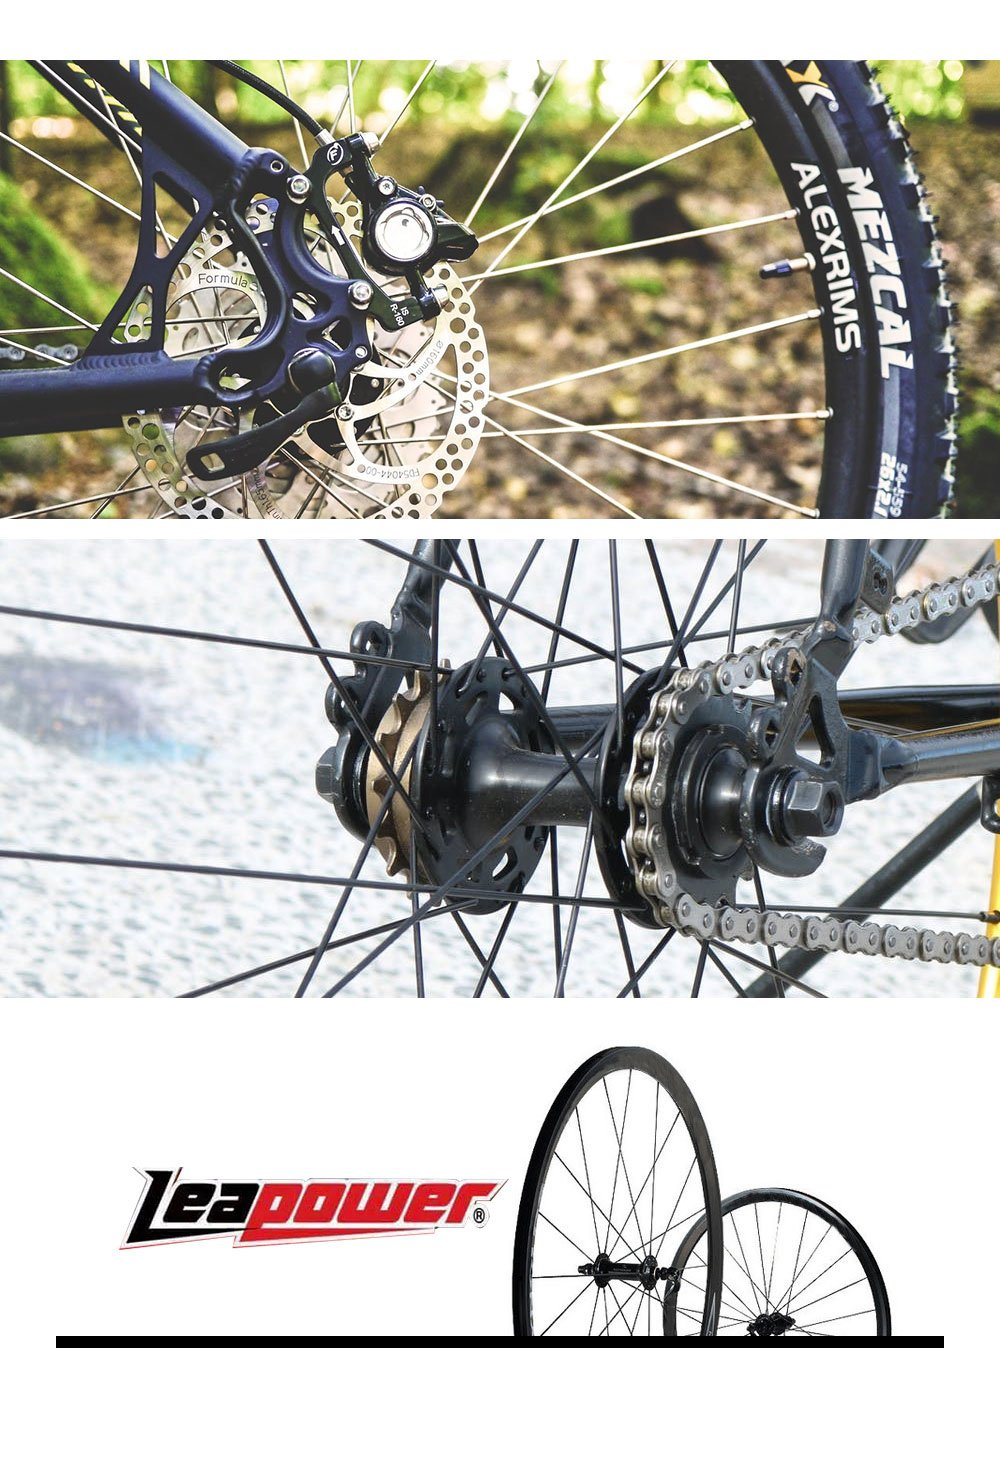 Bicycle Bike Frame Bearing Accessories Tool Leapower YS-BT1112 One Set Fits All